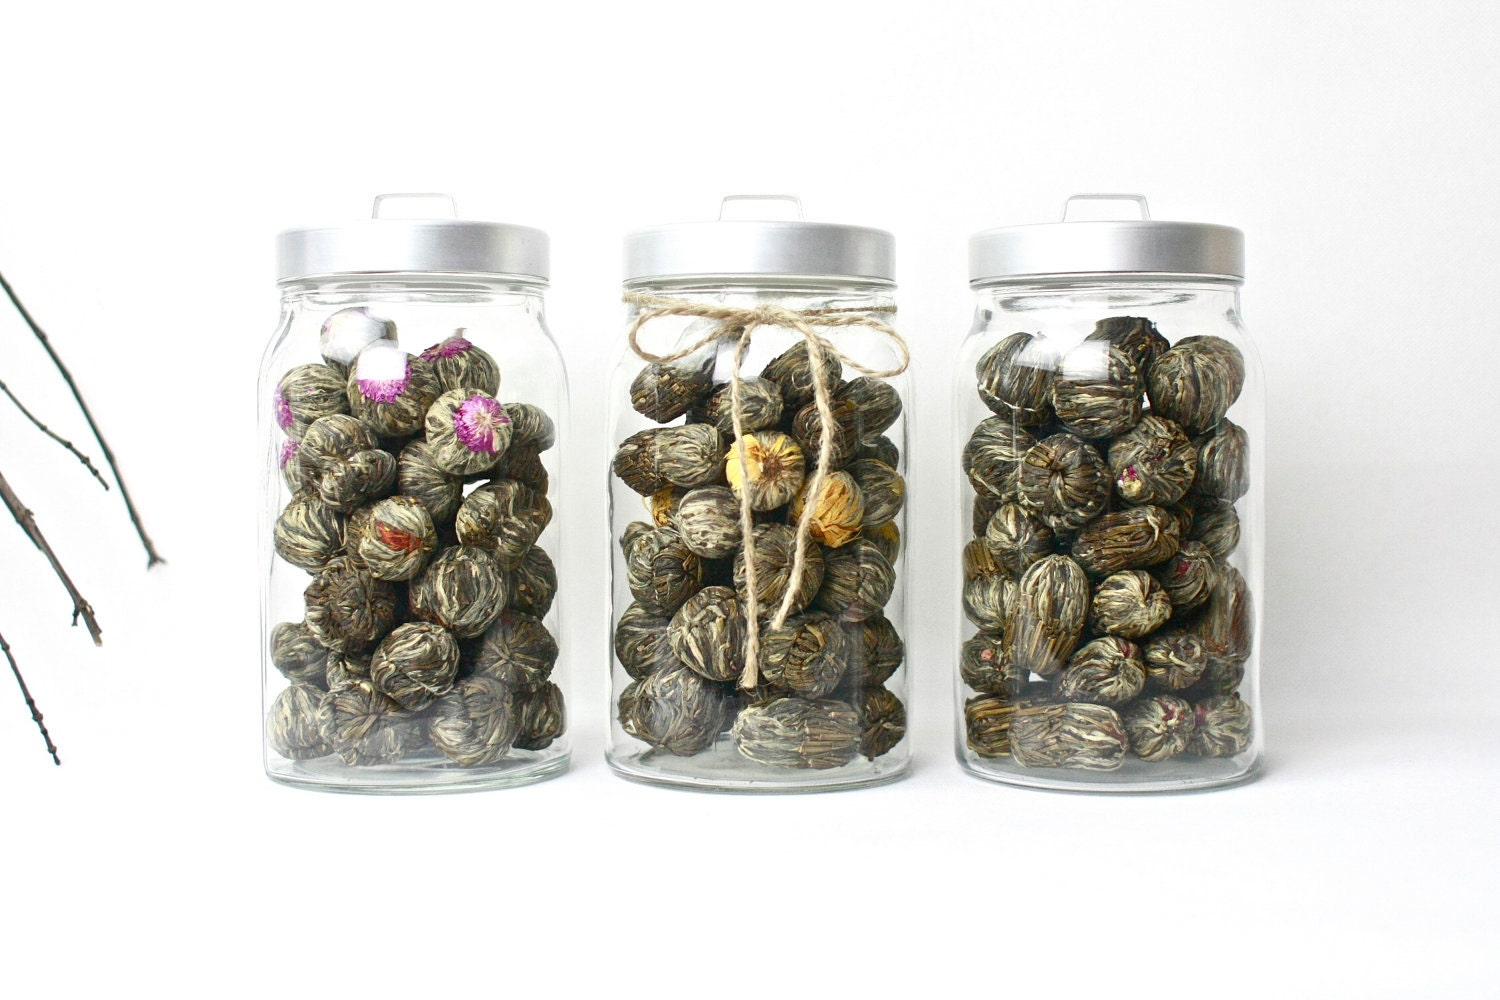 20pcs of Exotic Blooming Tea Flowering Jasmine Tea - any choices - Acupofafternoontea